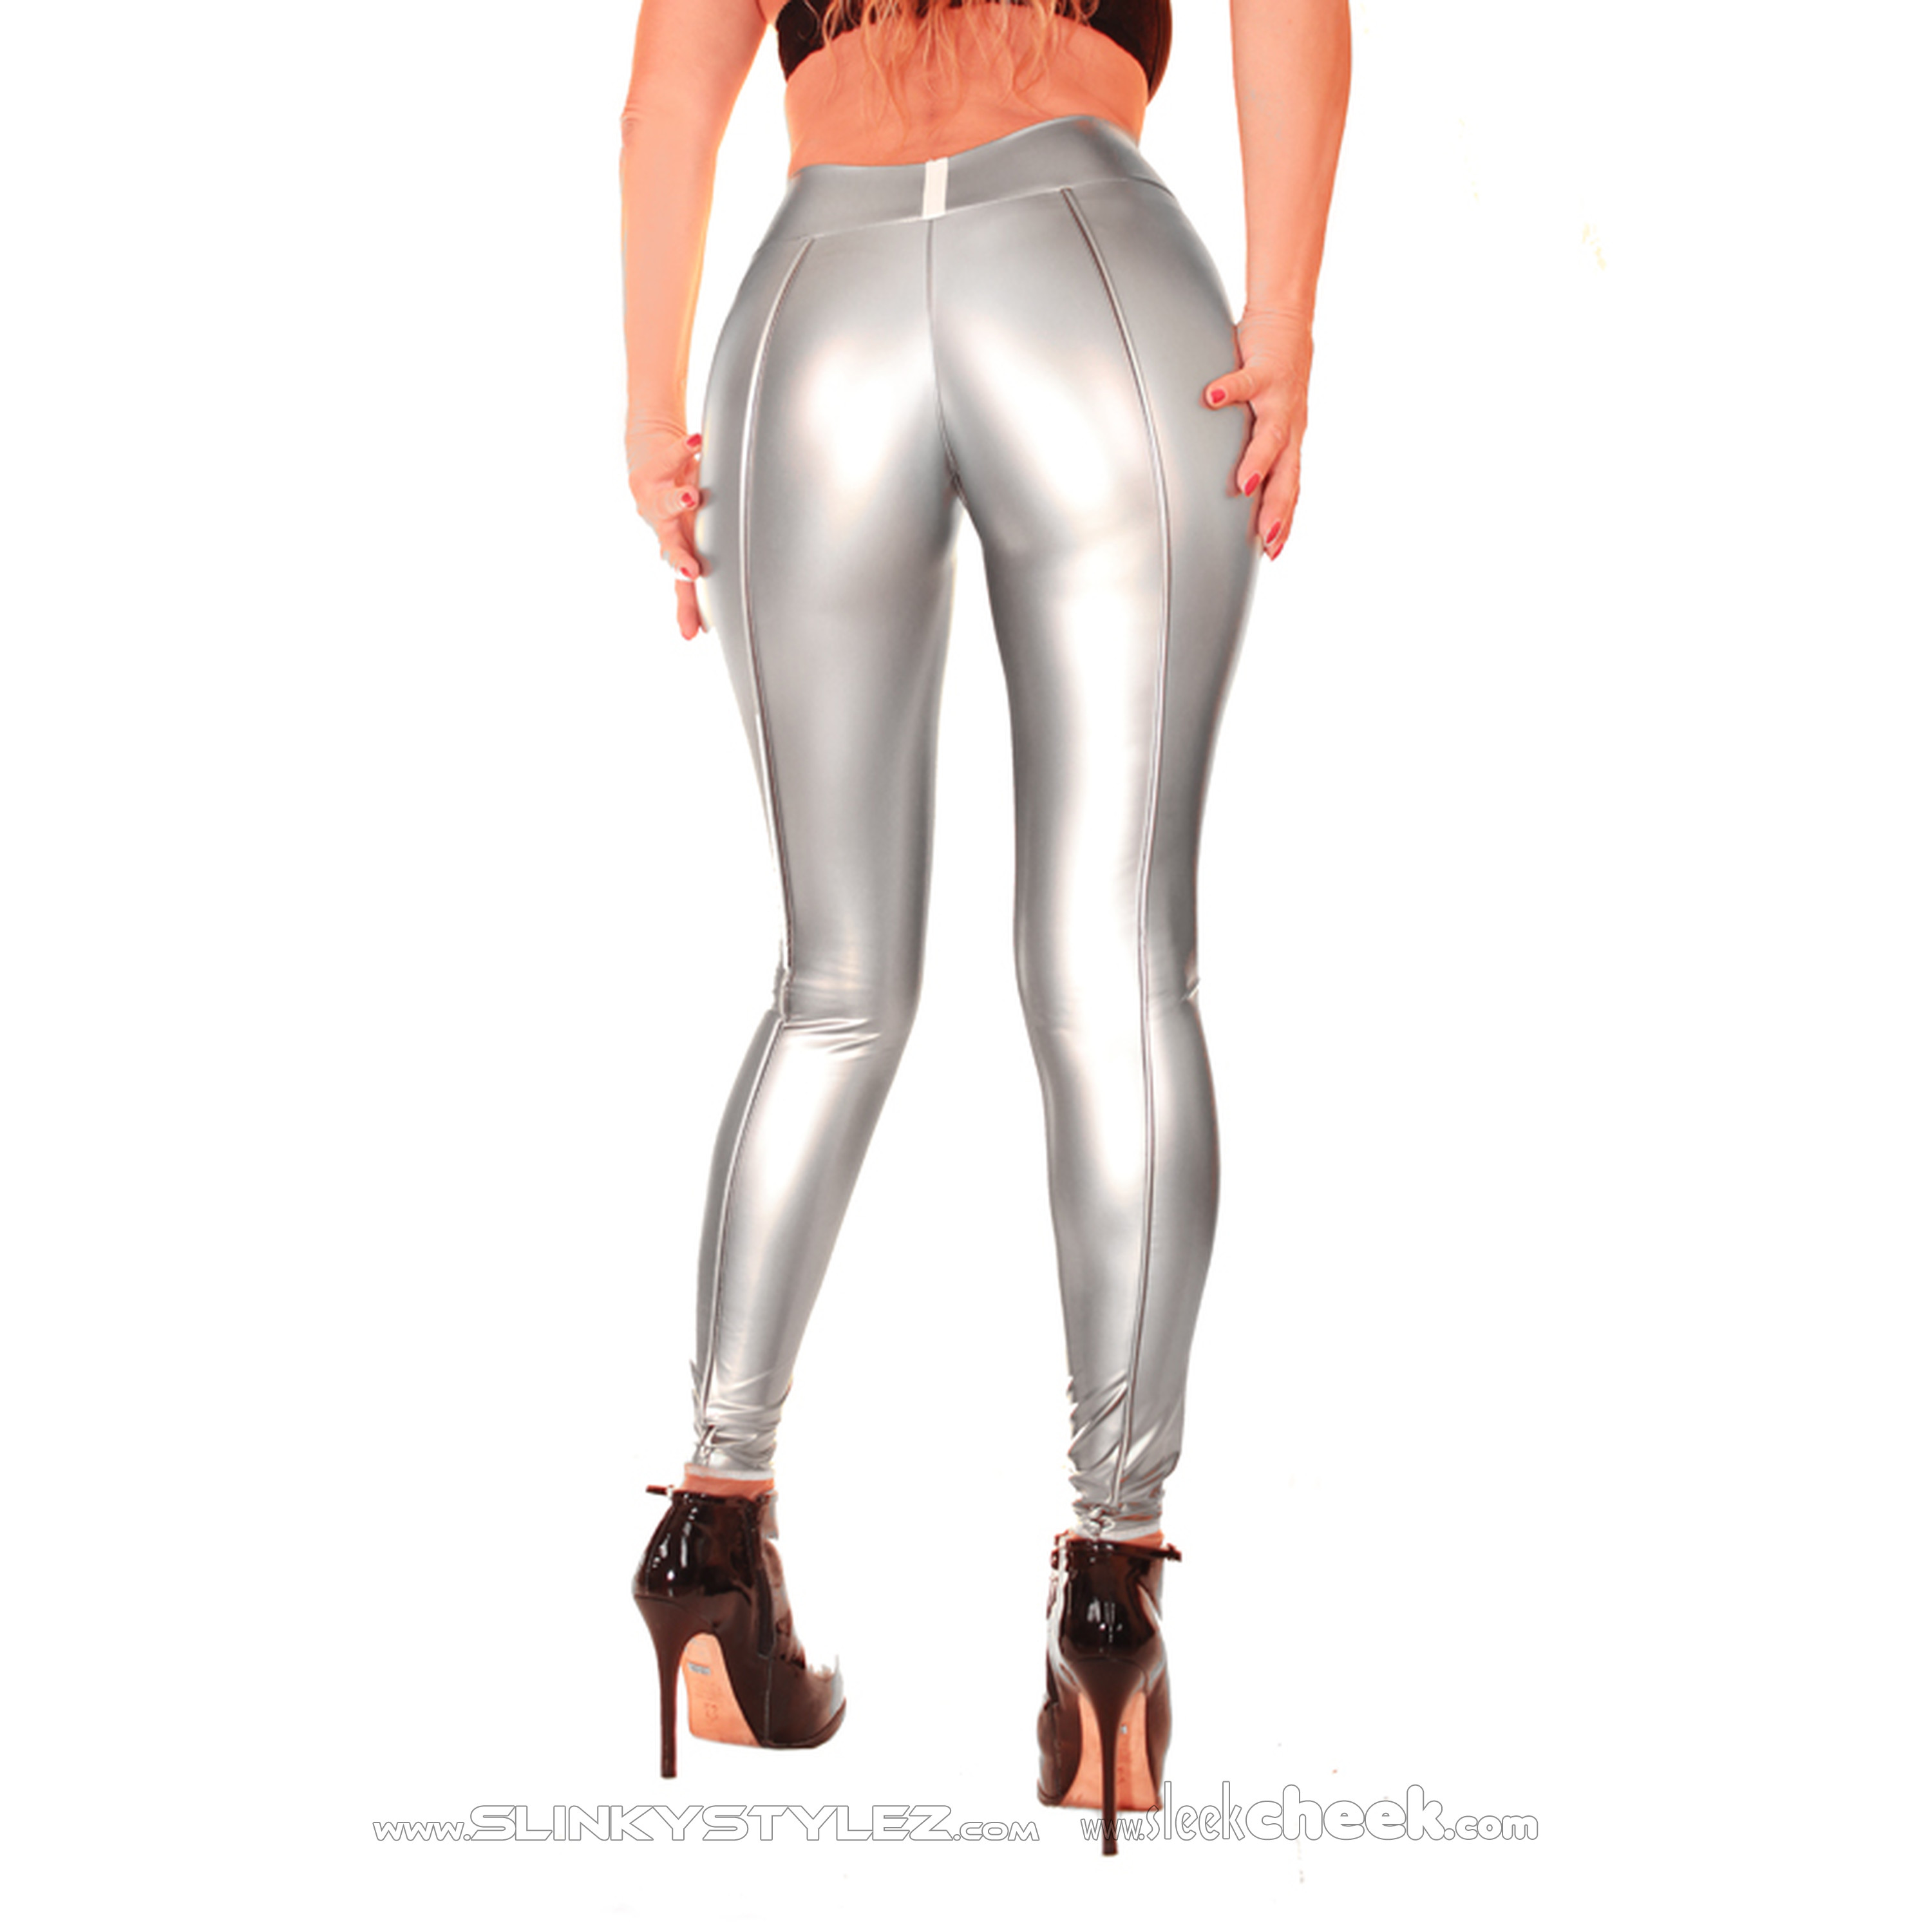 SLINKYSTYLEZ HL5ASX SmoothEdge PussySensation Ouvert-Contour-Leggings - CrystalLac Z360 - CUSTOM (L56D-N34)